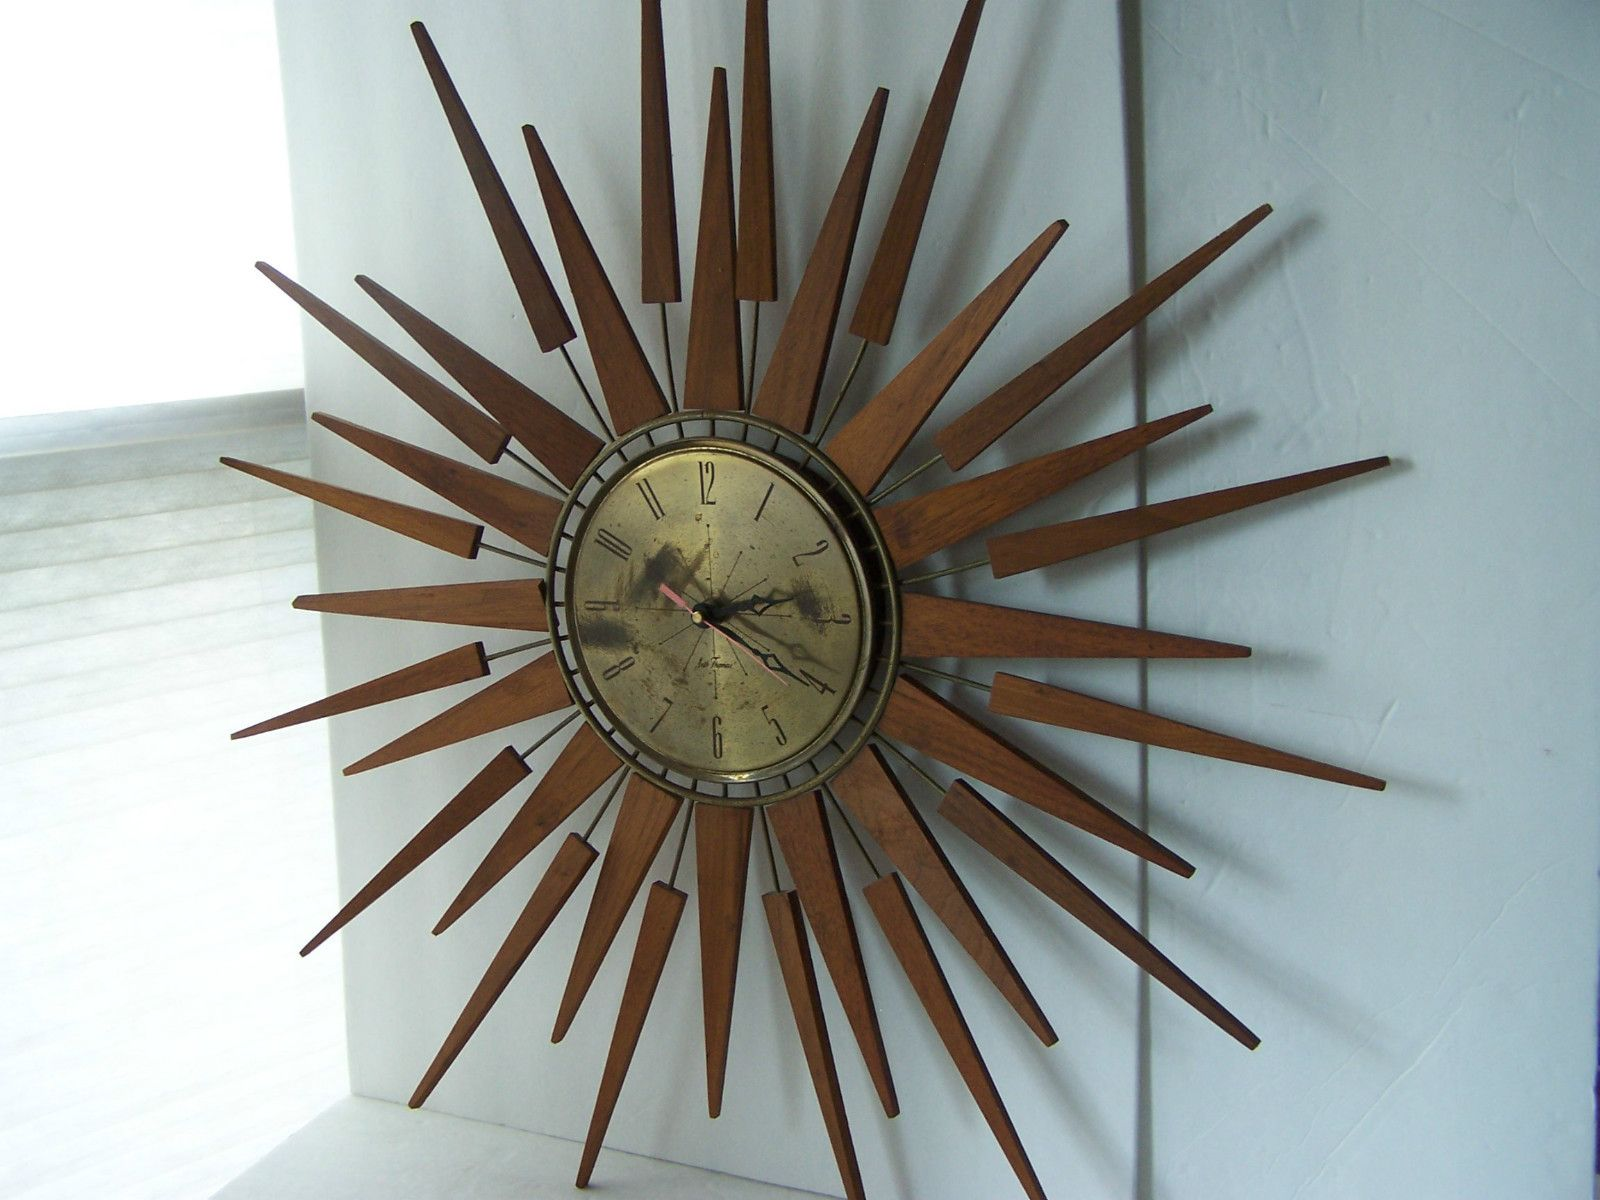 Vintage seth thomas wall clock starburst sunburst atomic retro mid vintage seth thomas wall clock starburst sunburst atomic retro mid century eames amipublicfo Images